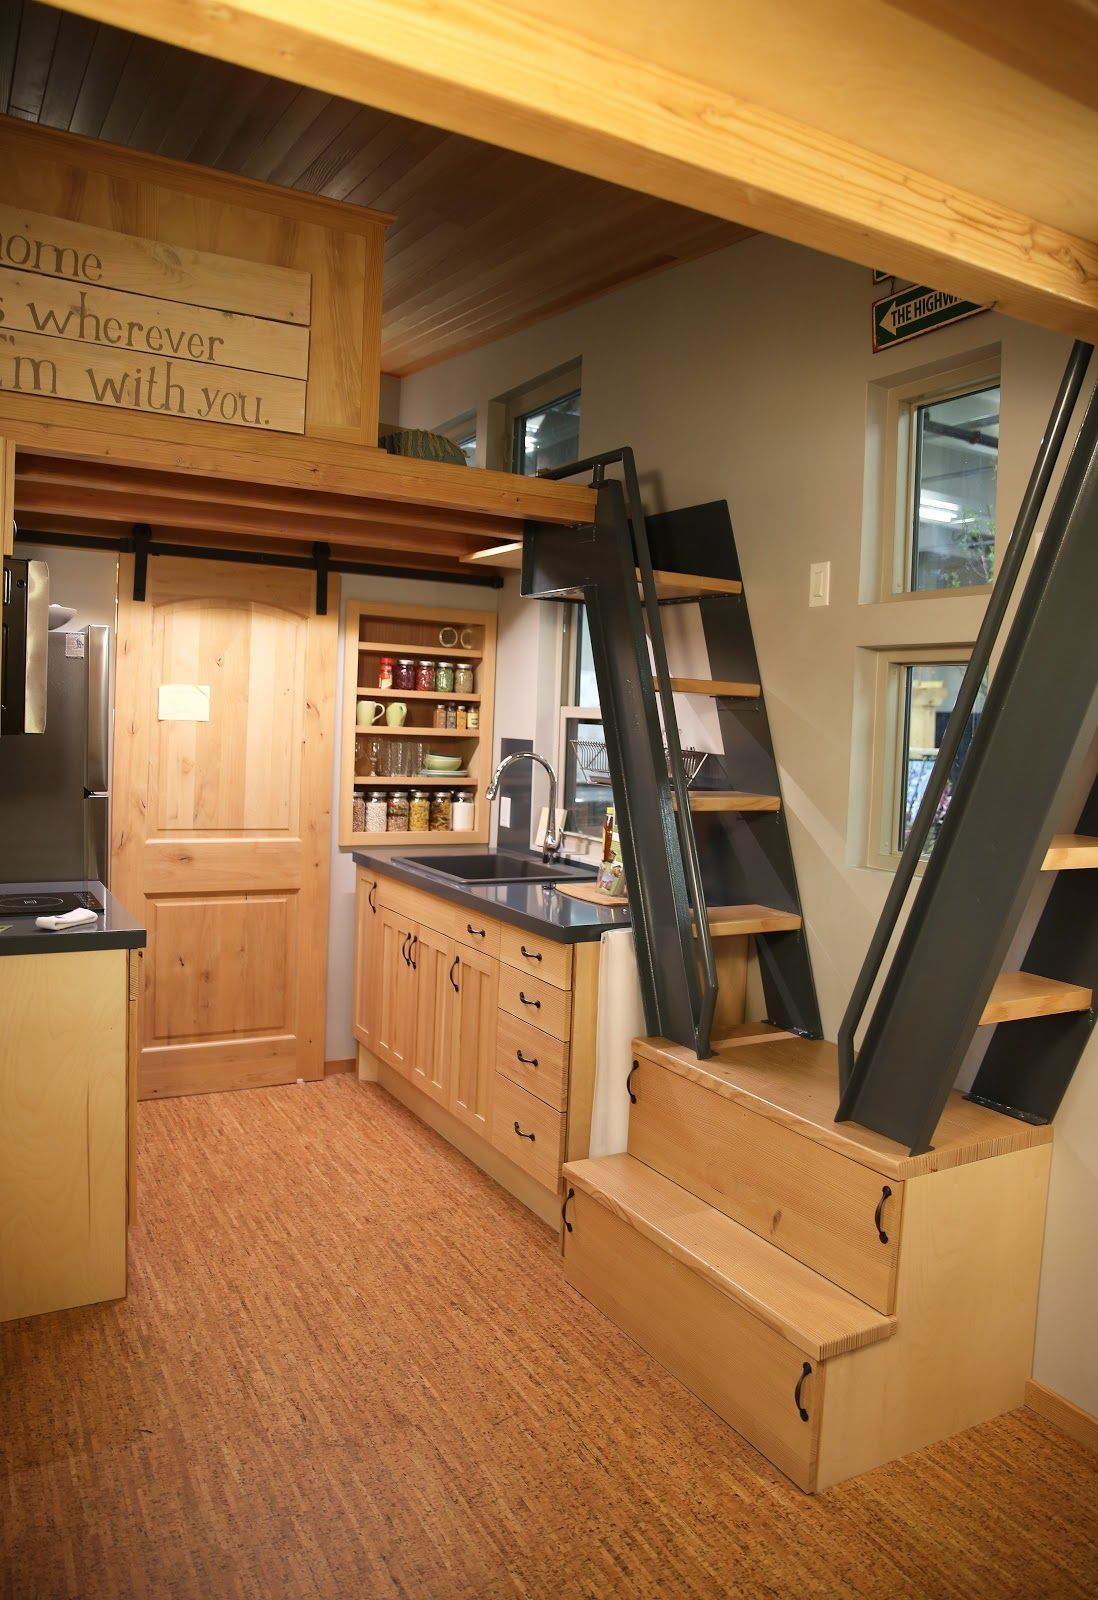 50 Tiny Home Storage Ideas In 2019 Tiny House Furniture